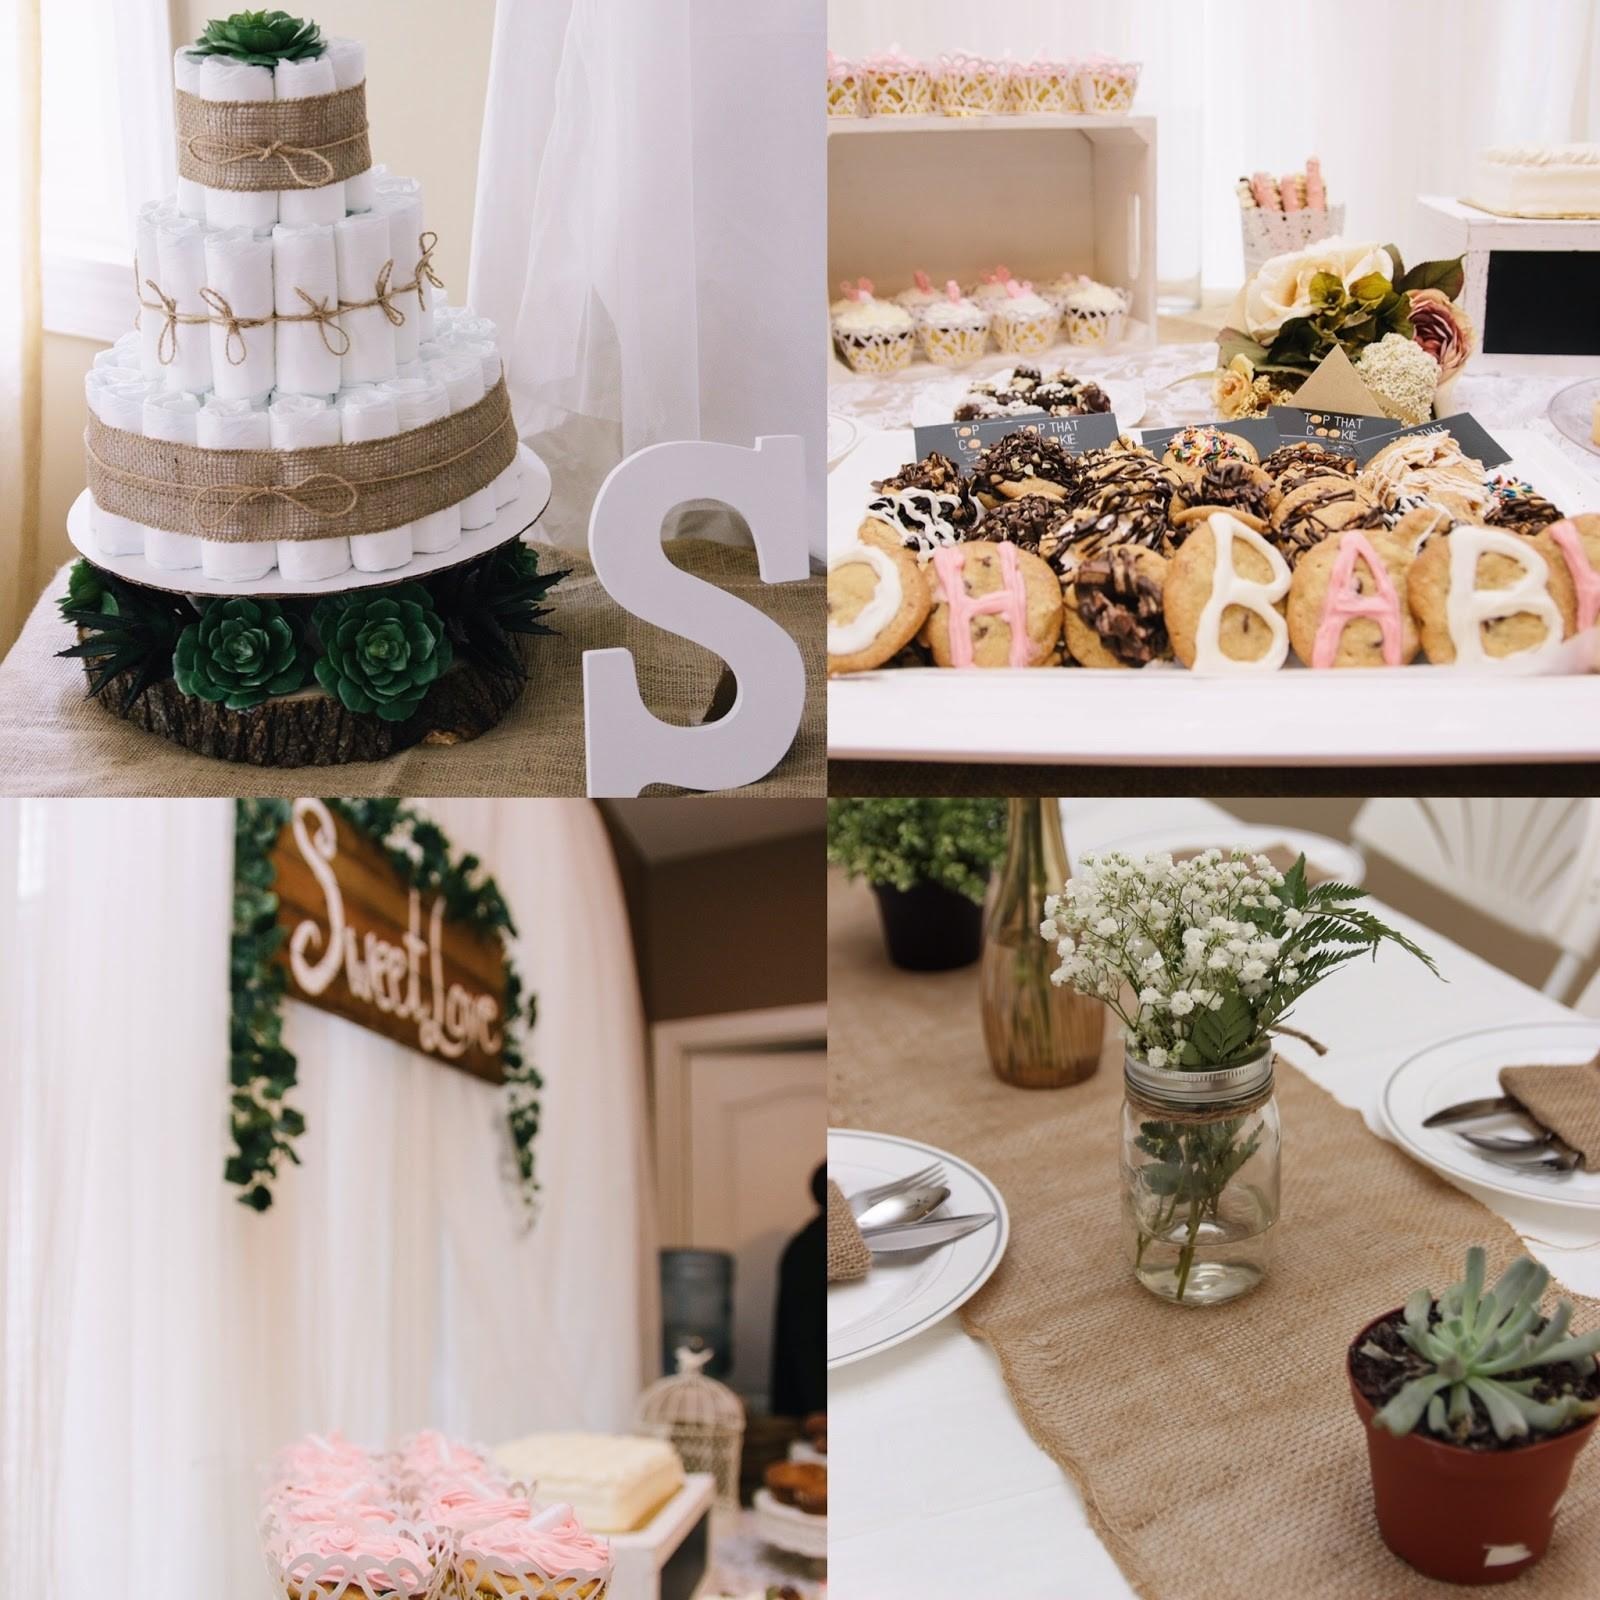 Our Boho Baby Shower